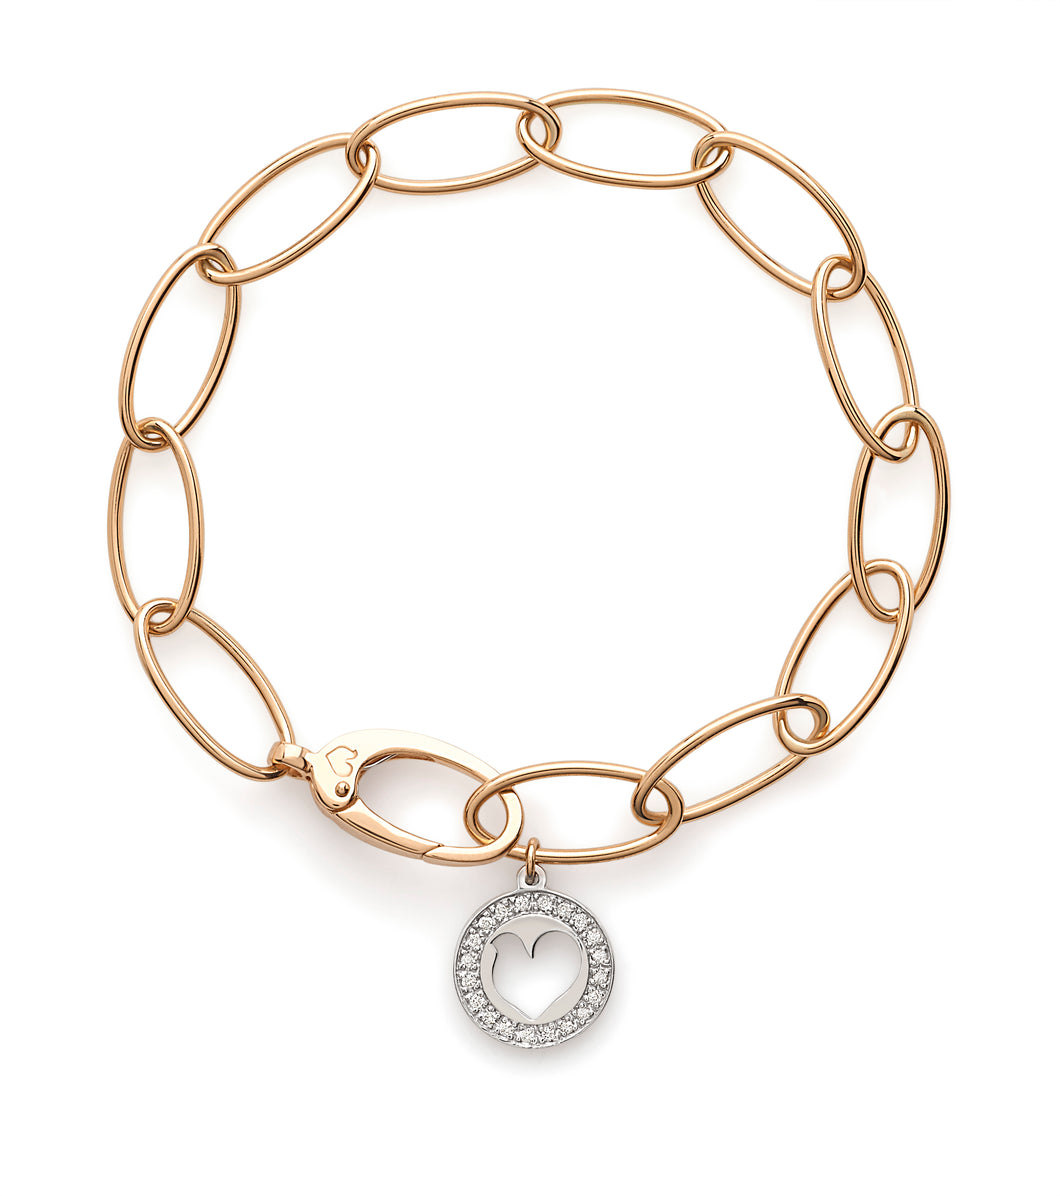 Chantecler Diamond Charm Bracelet